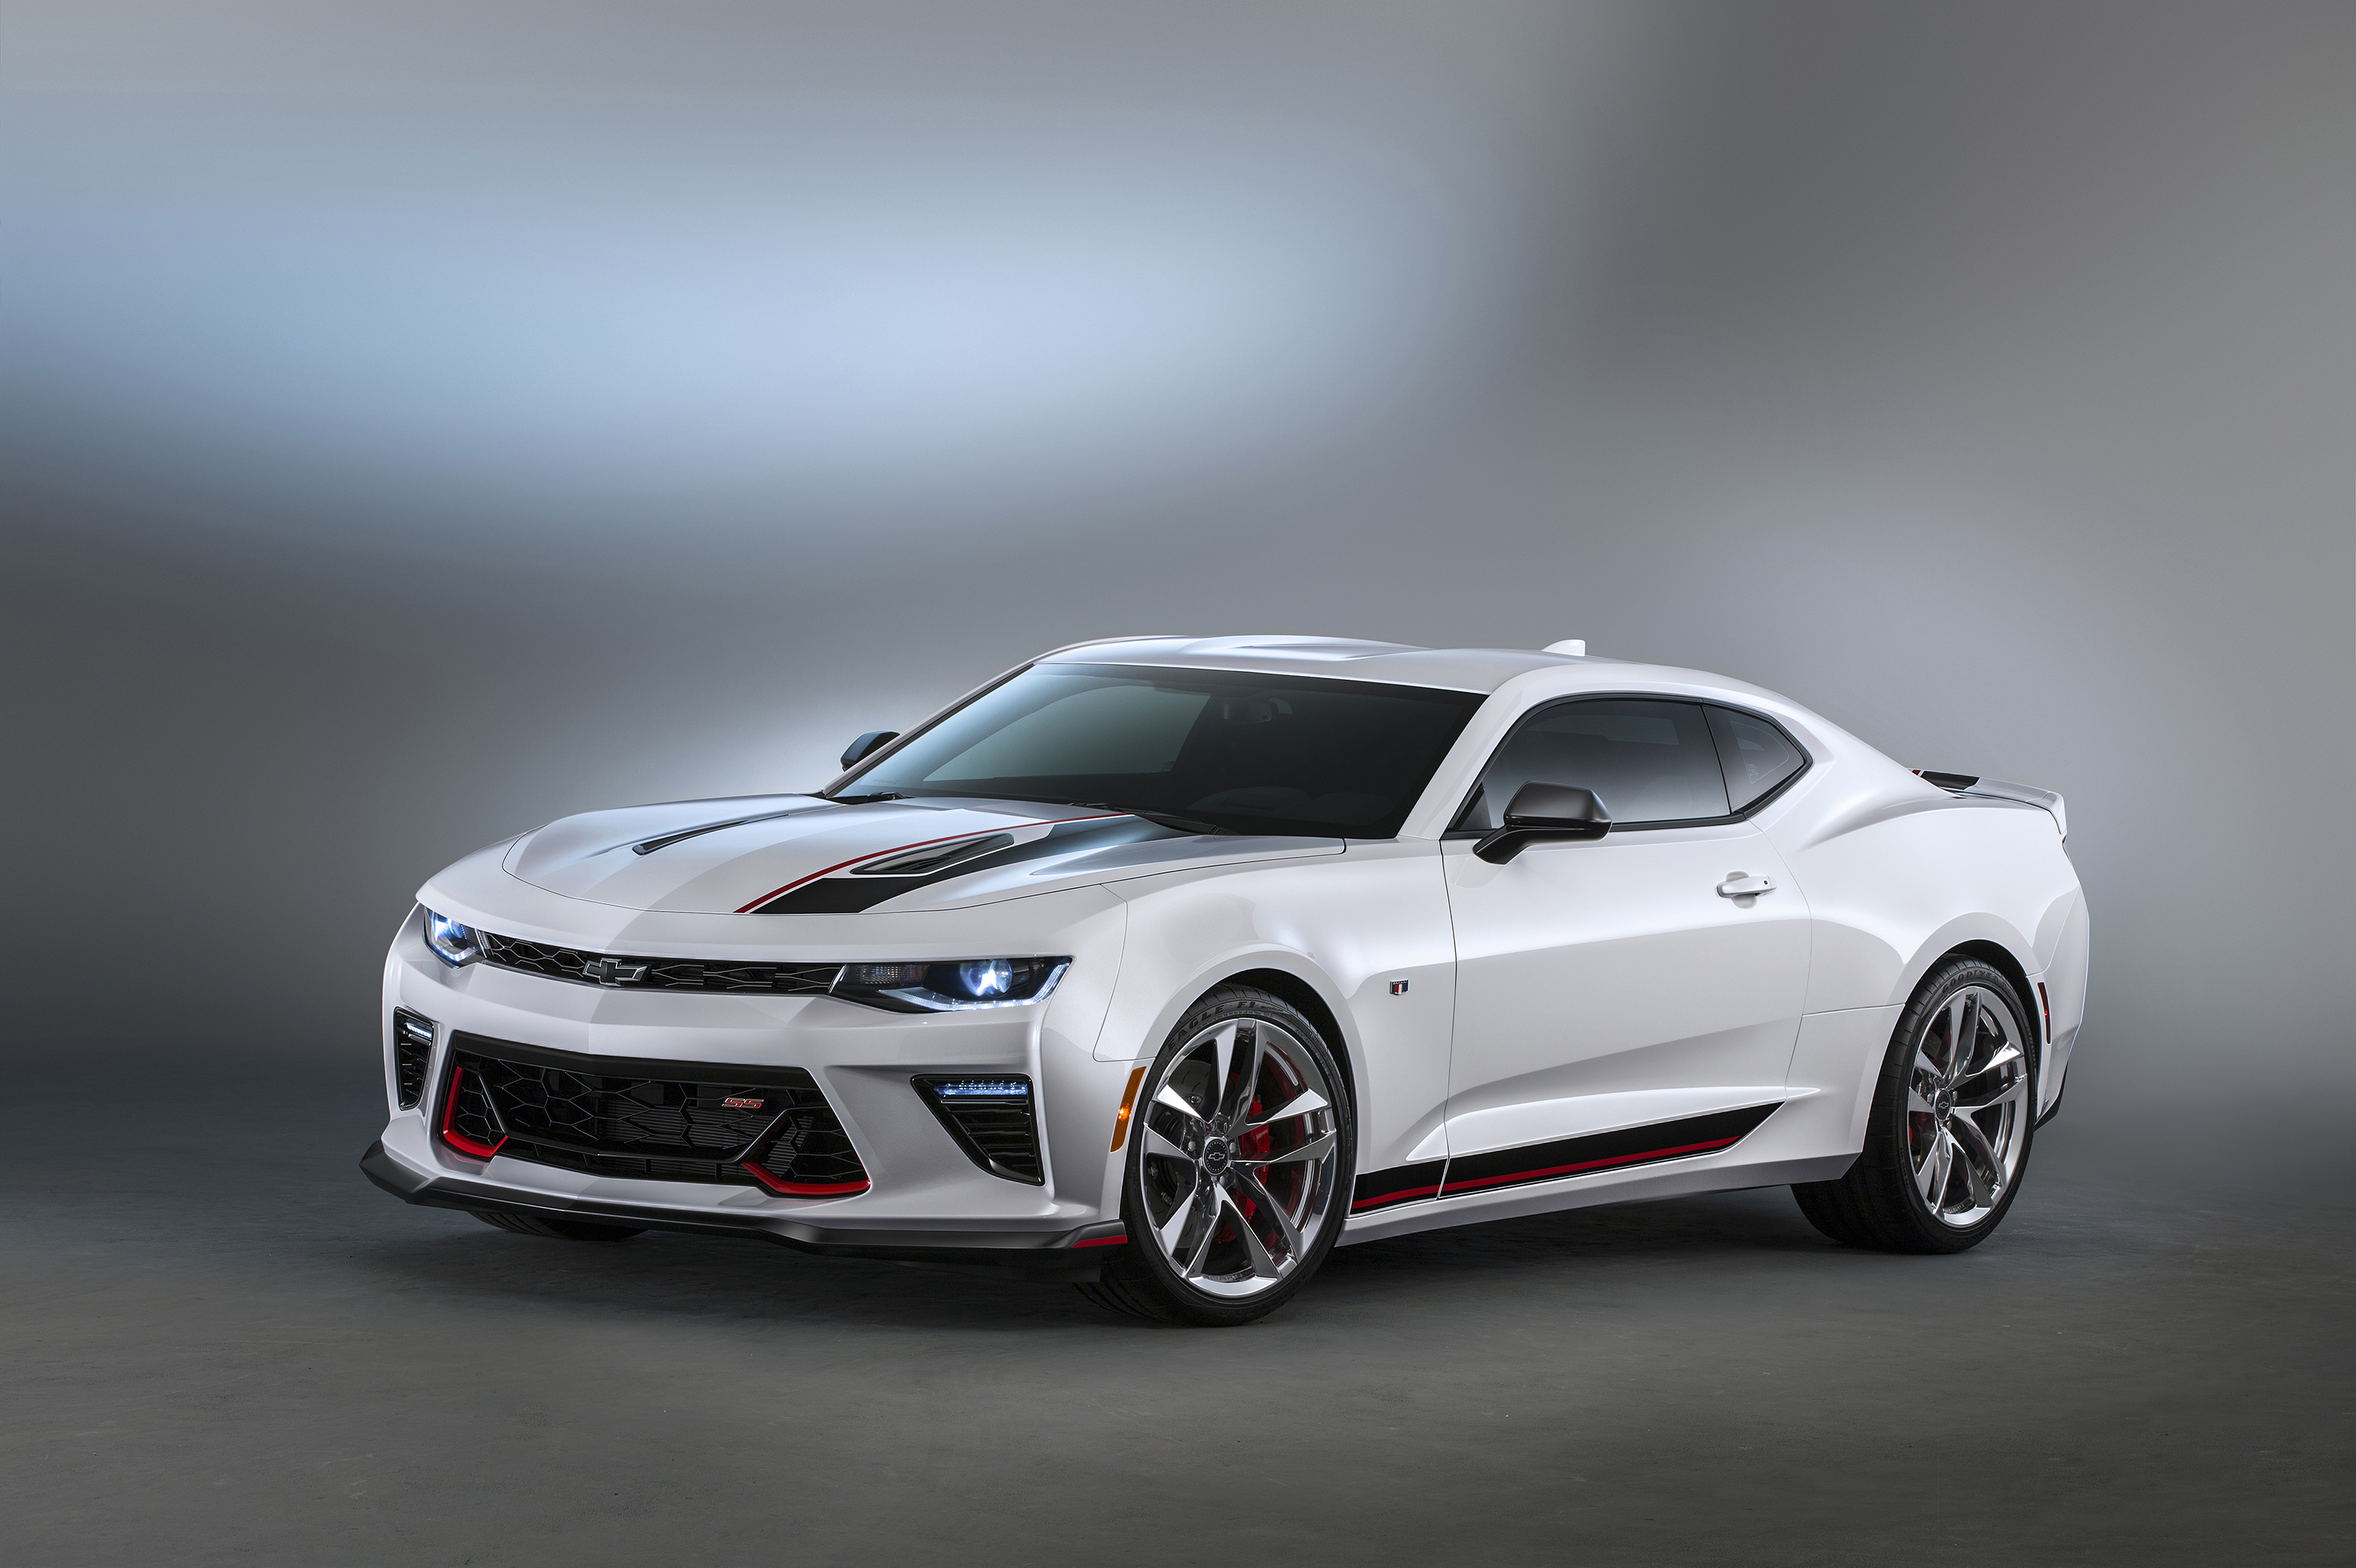 gen six camaro concepts shine at sema show. Black Bedroom Furniture Sets. Home Design Ideas